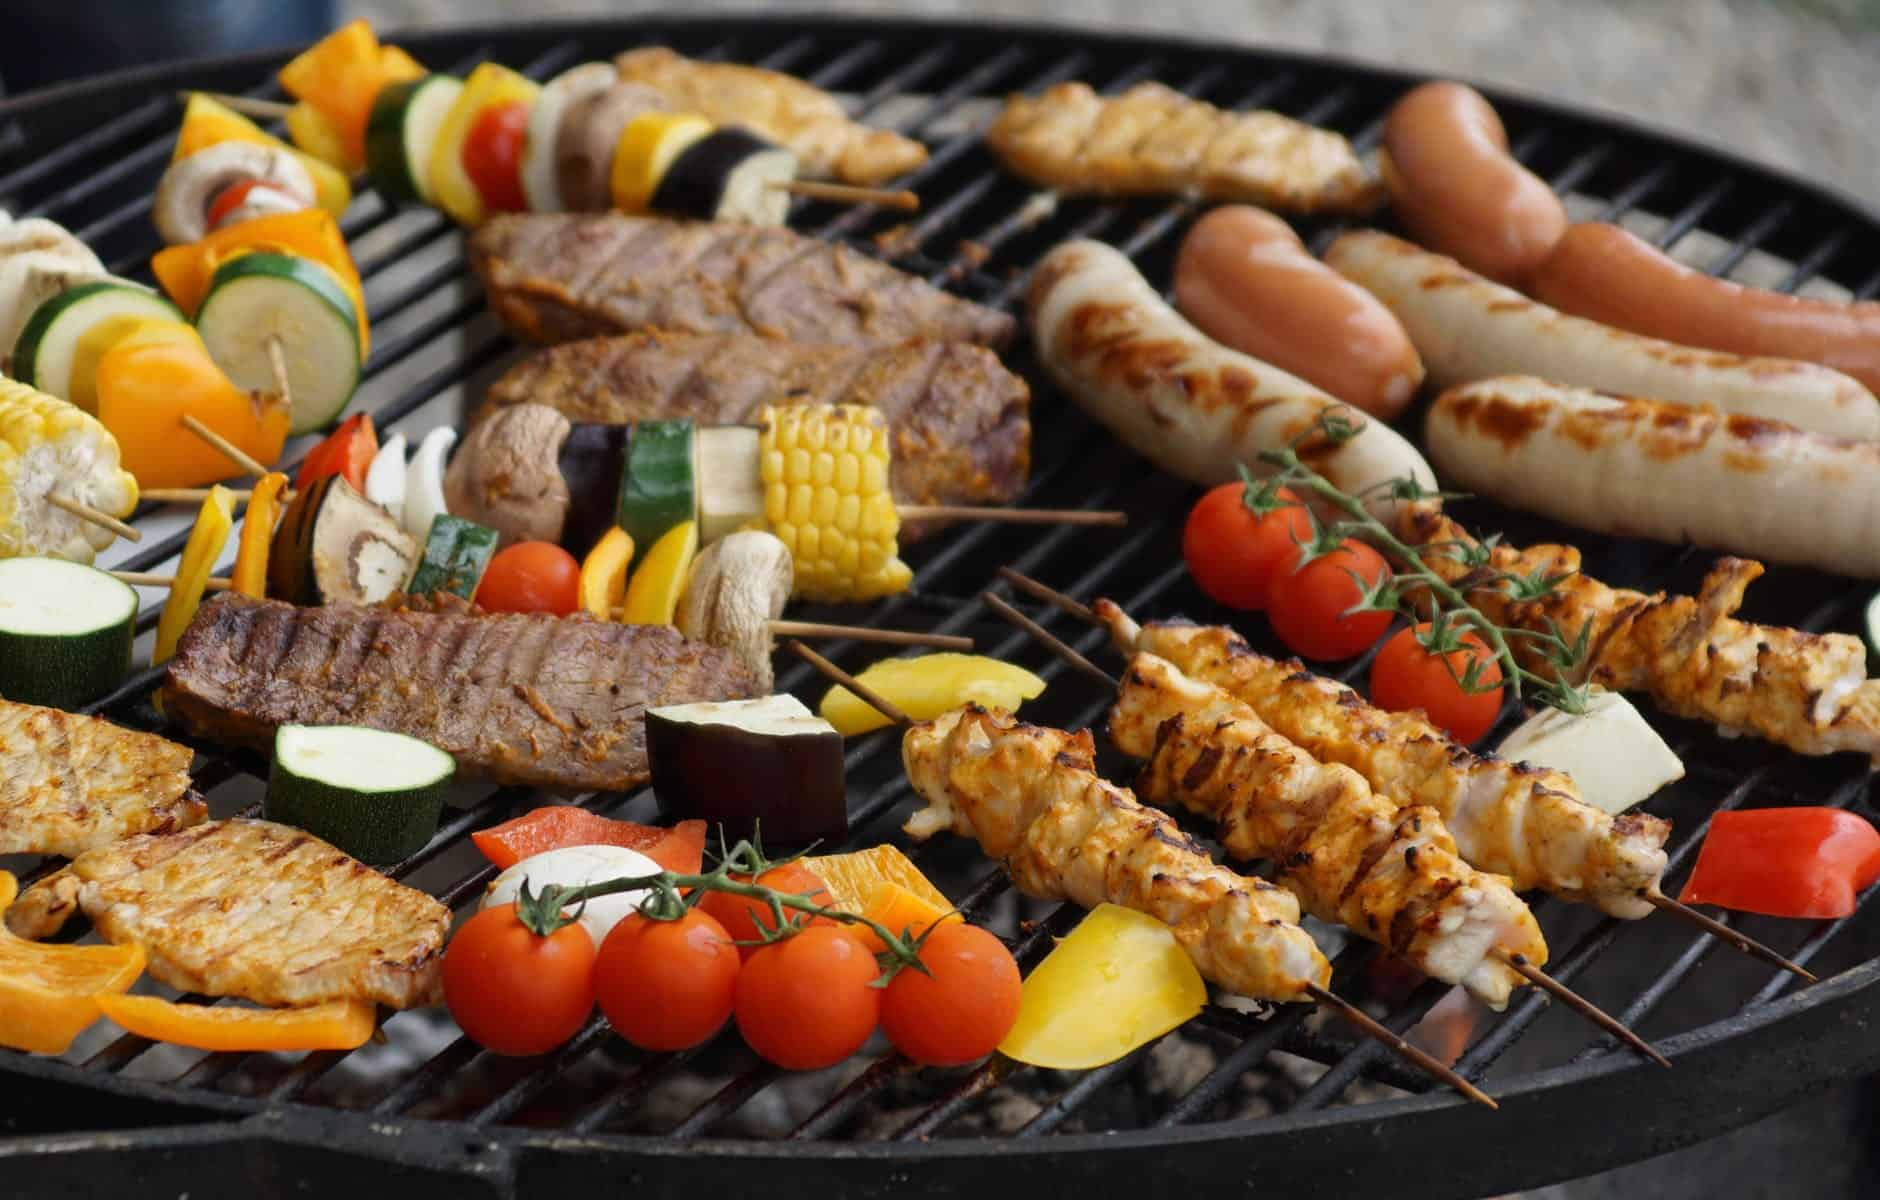 Now Pack-Up Your Bbq Outdoor Cooking Setup